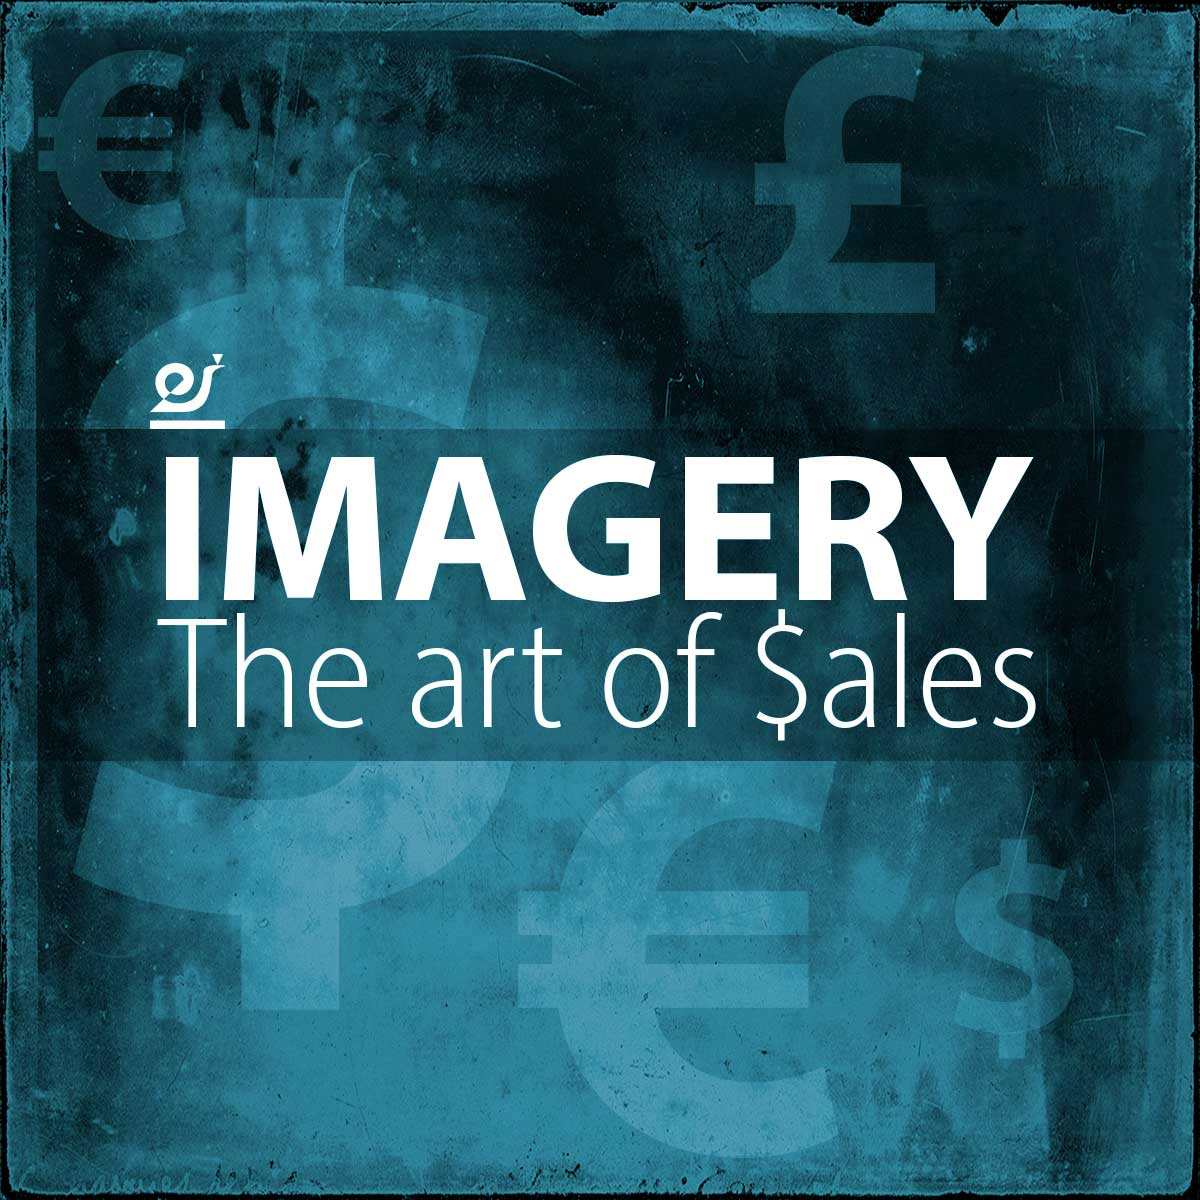 How to increase sales. What price do you put on your imagery and does it match your product?